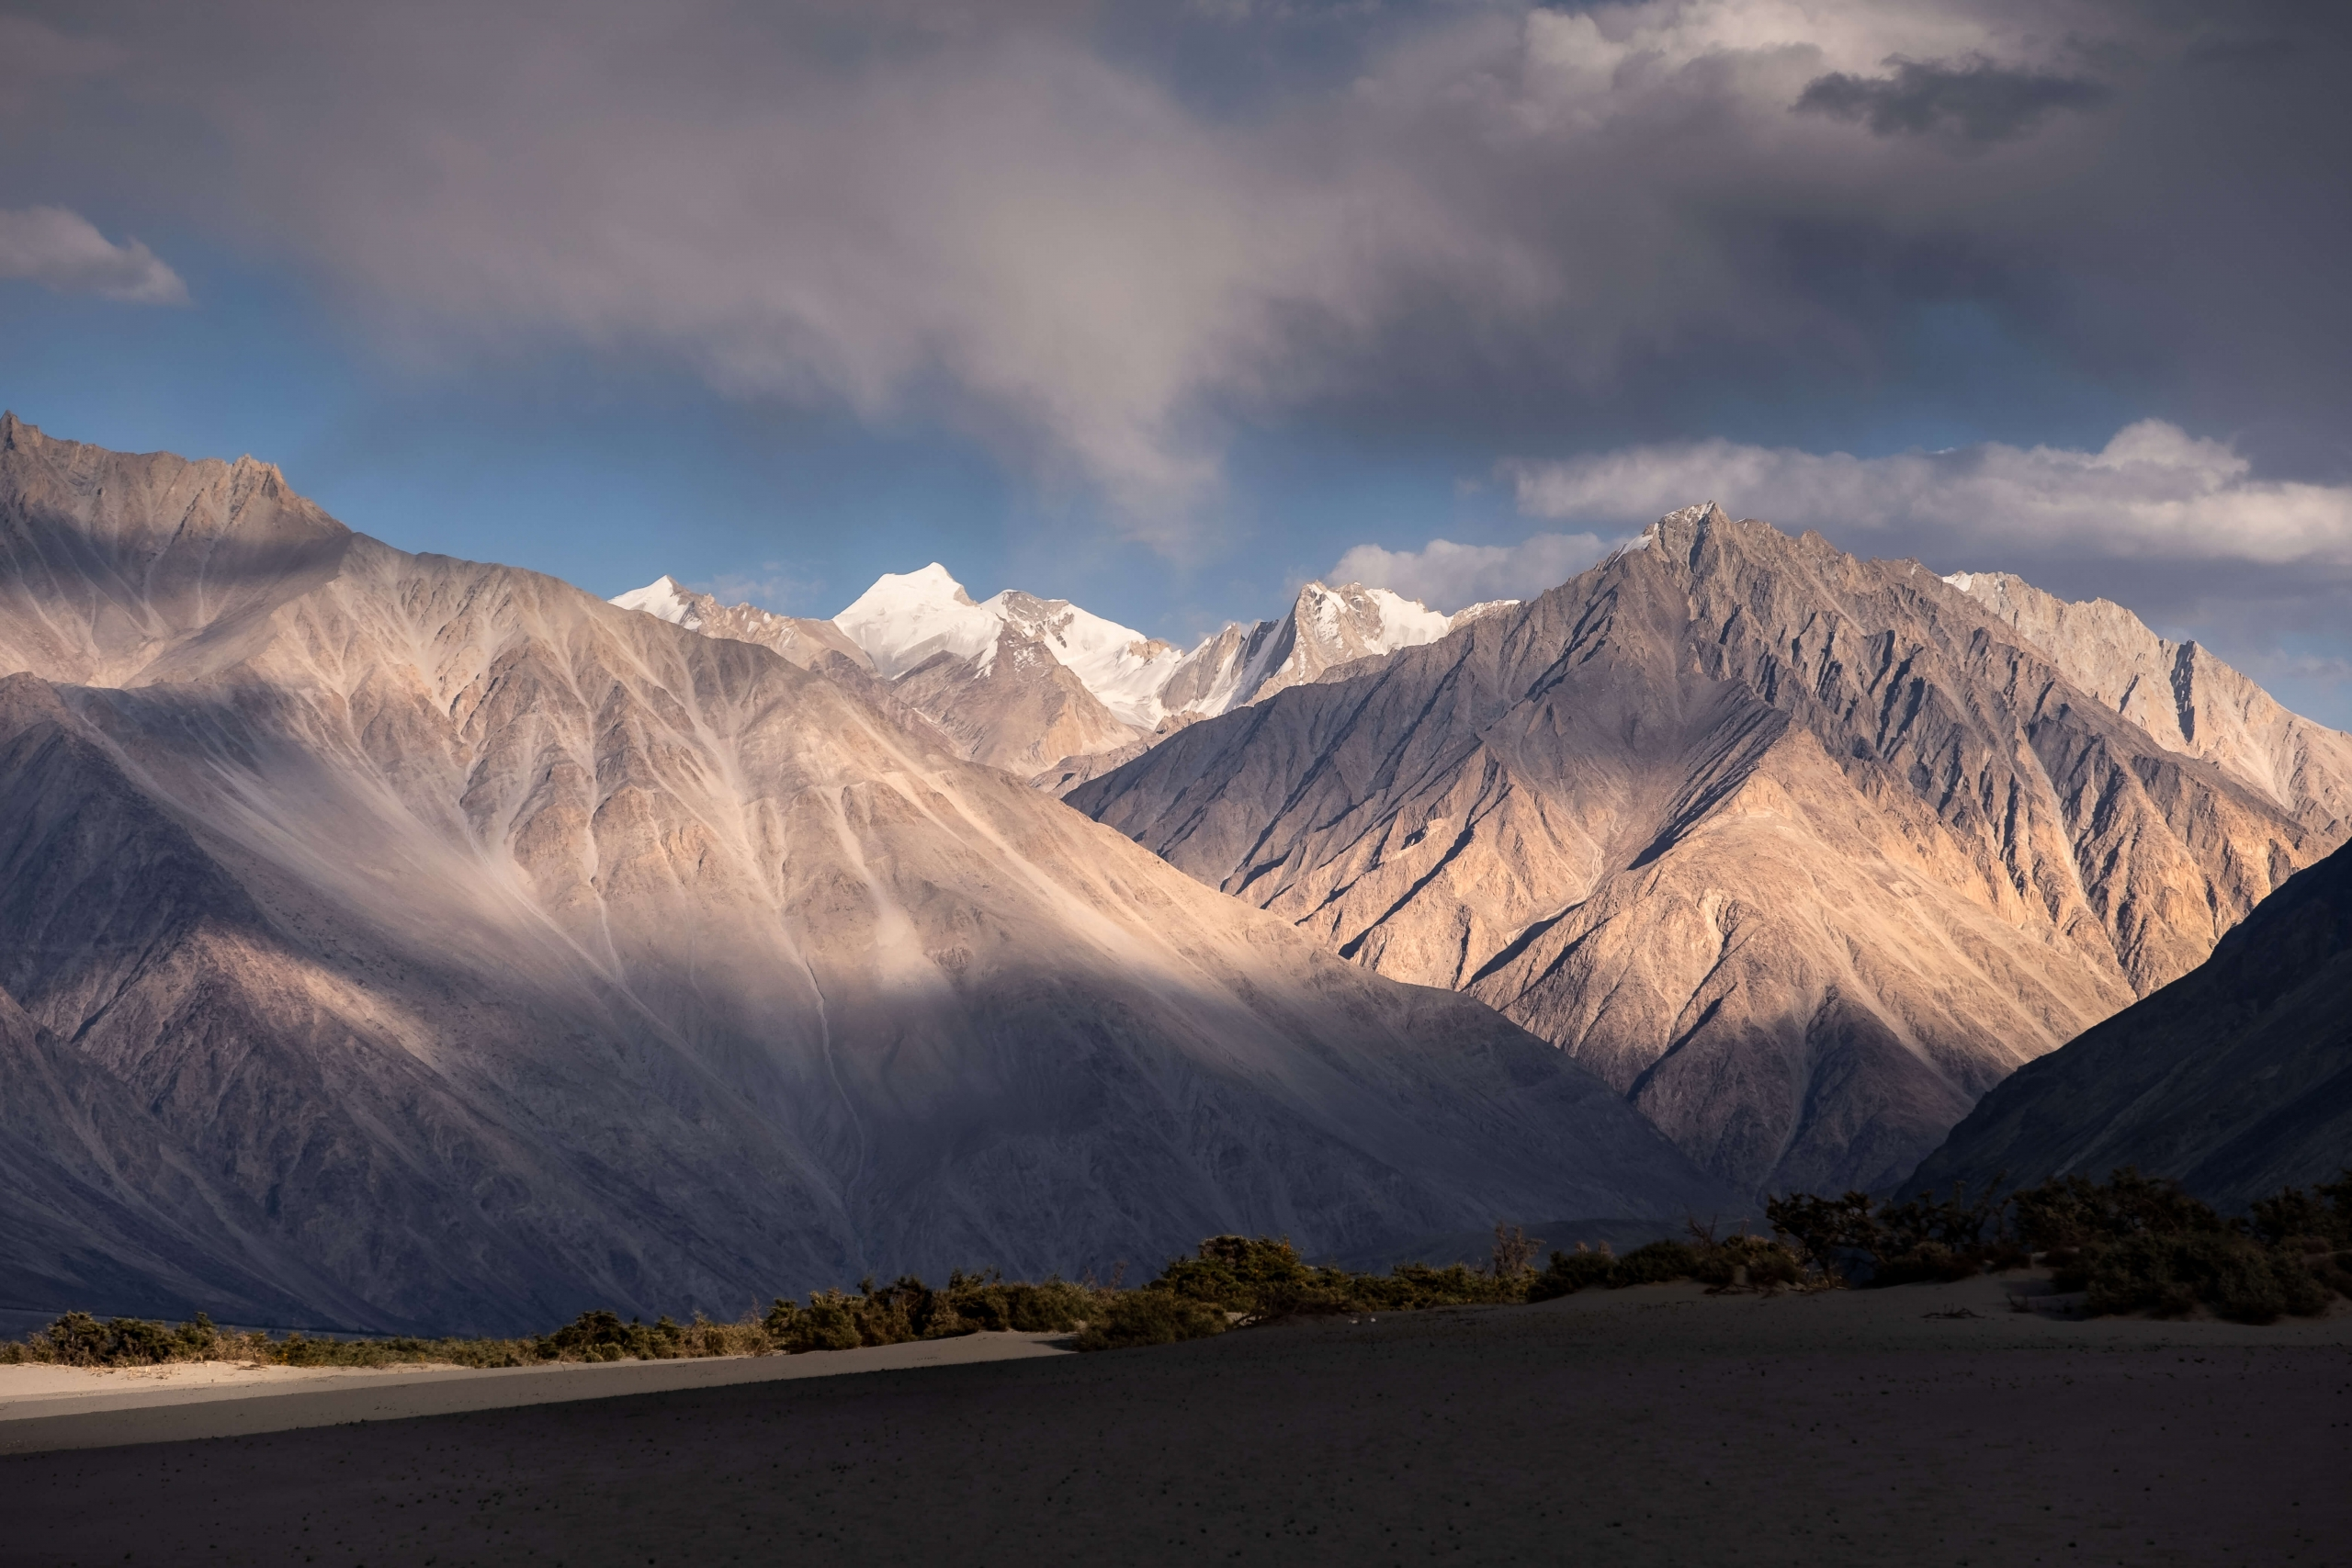 Nubra Valley mountains